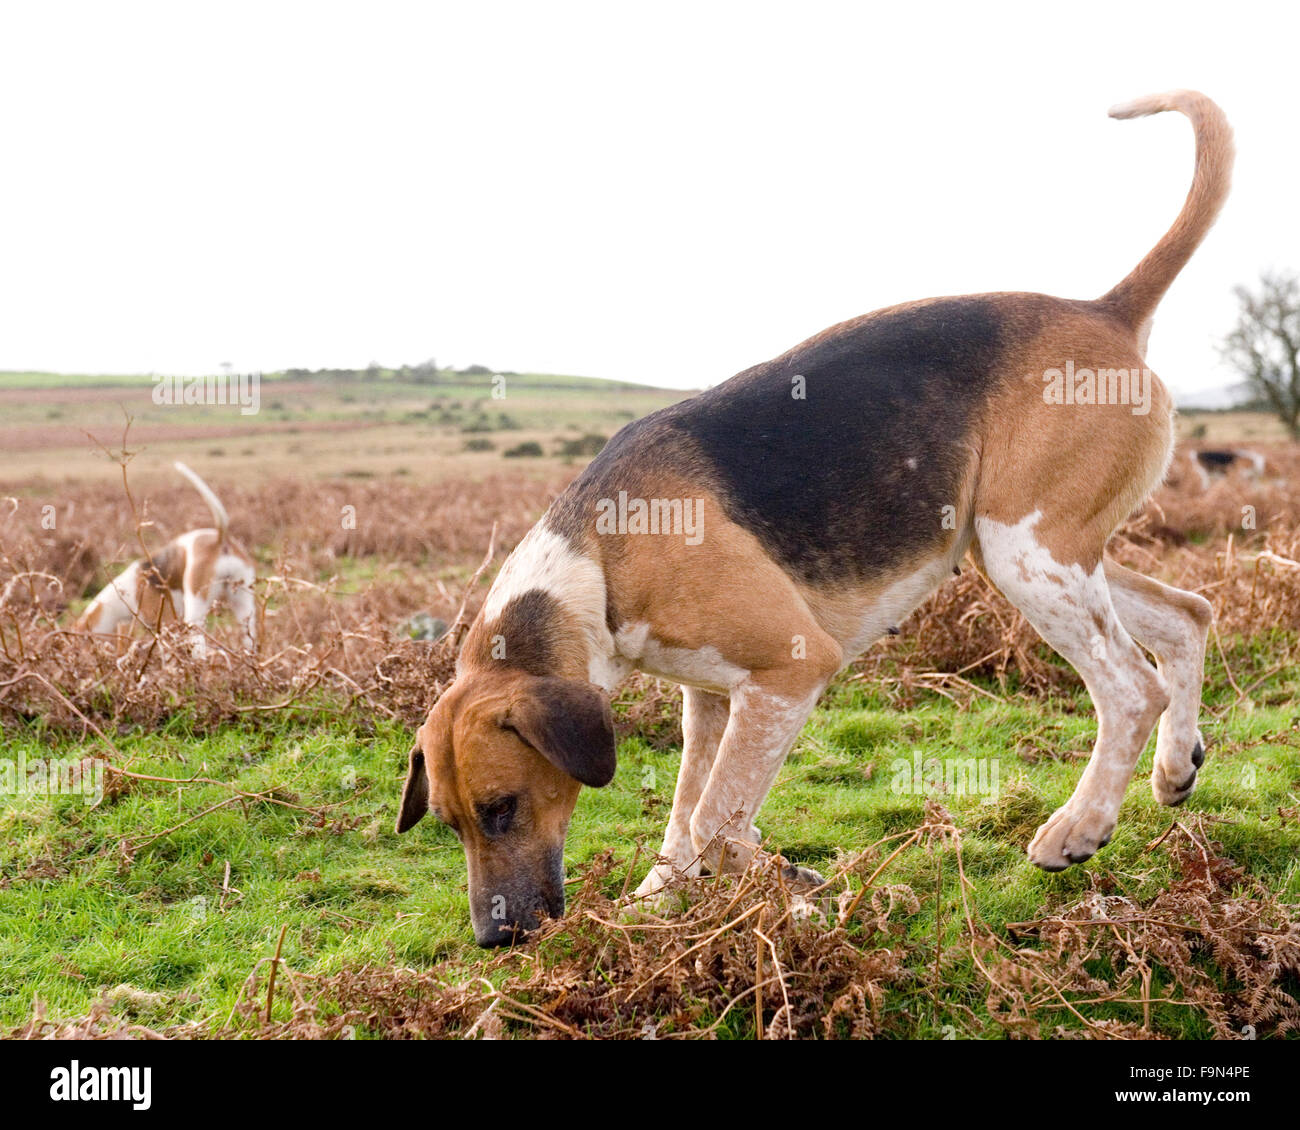 foxhound on a hunt - Stock Image